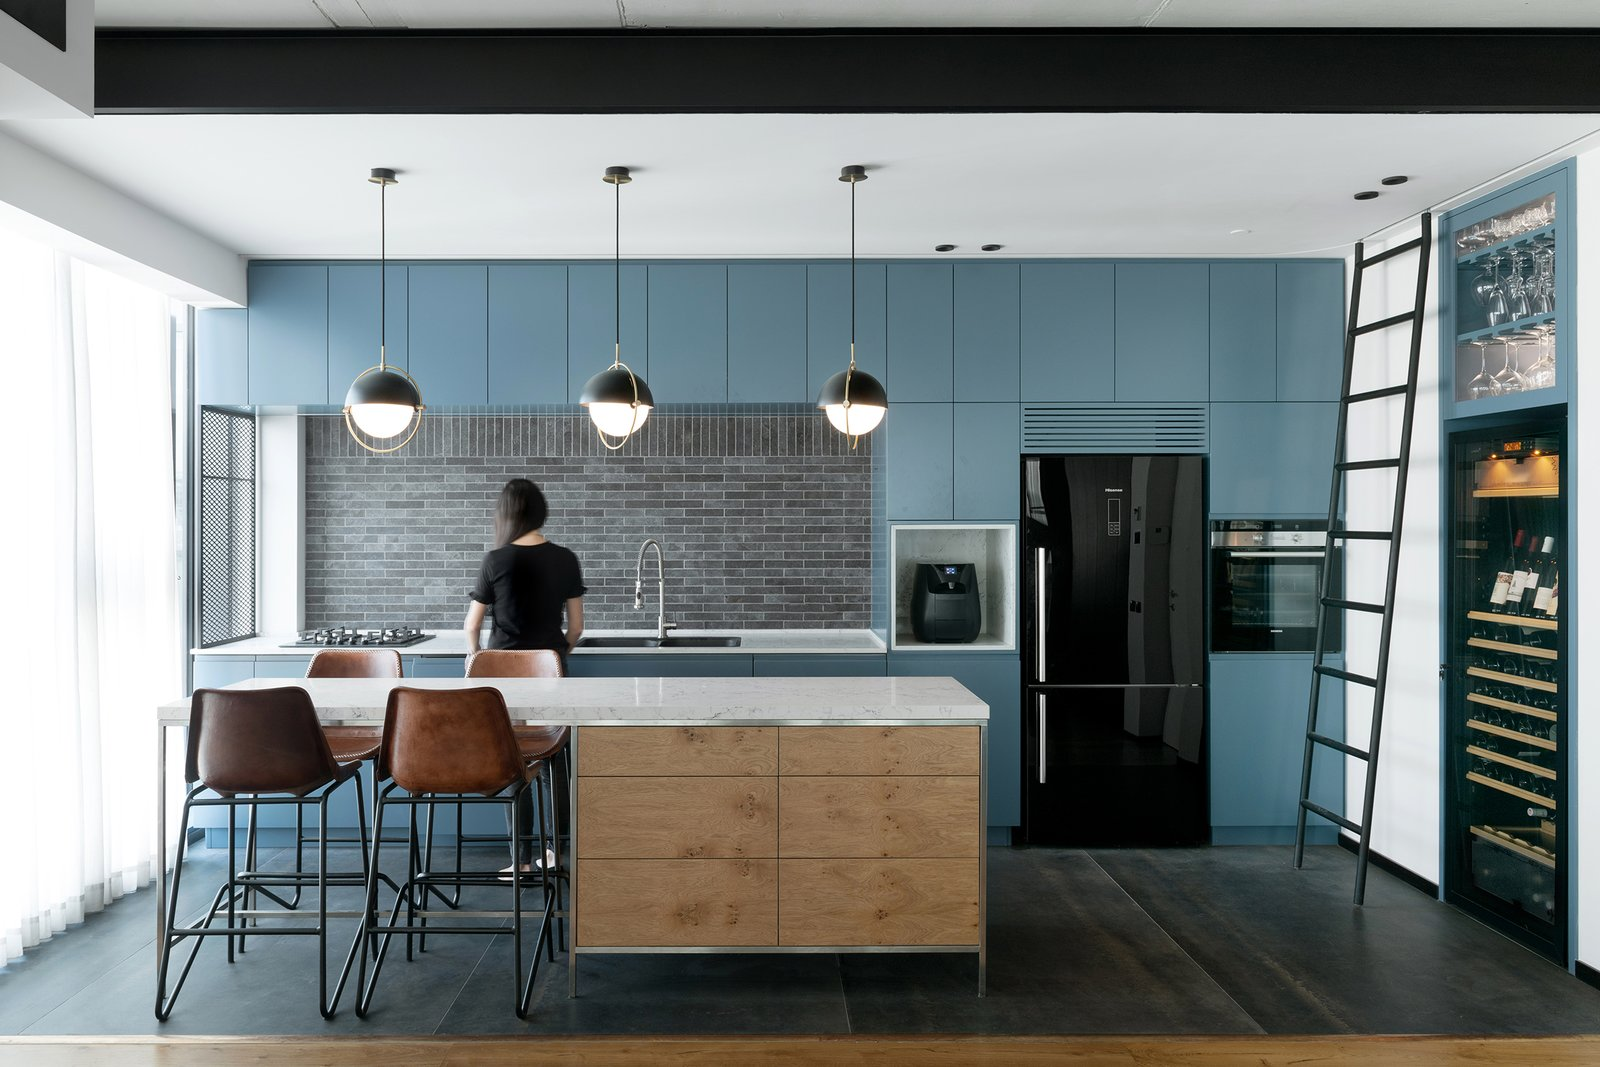 6 Simple Ways to Save on Your Kitchen Renovation | Architecture ...